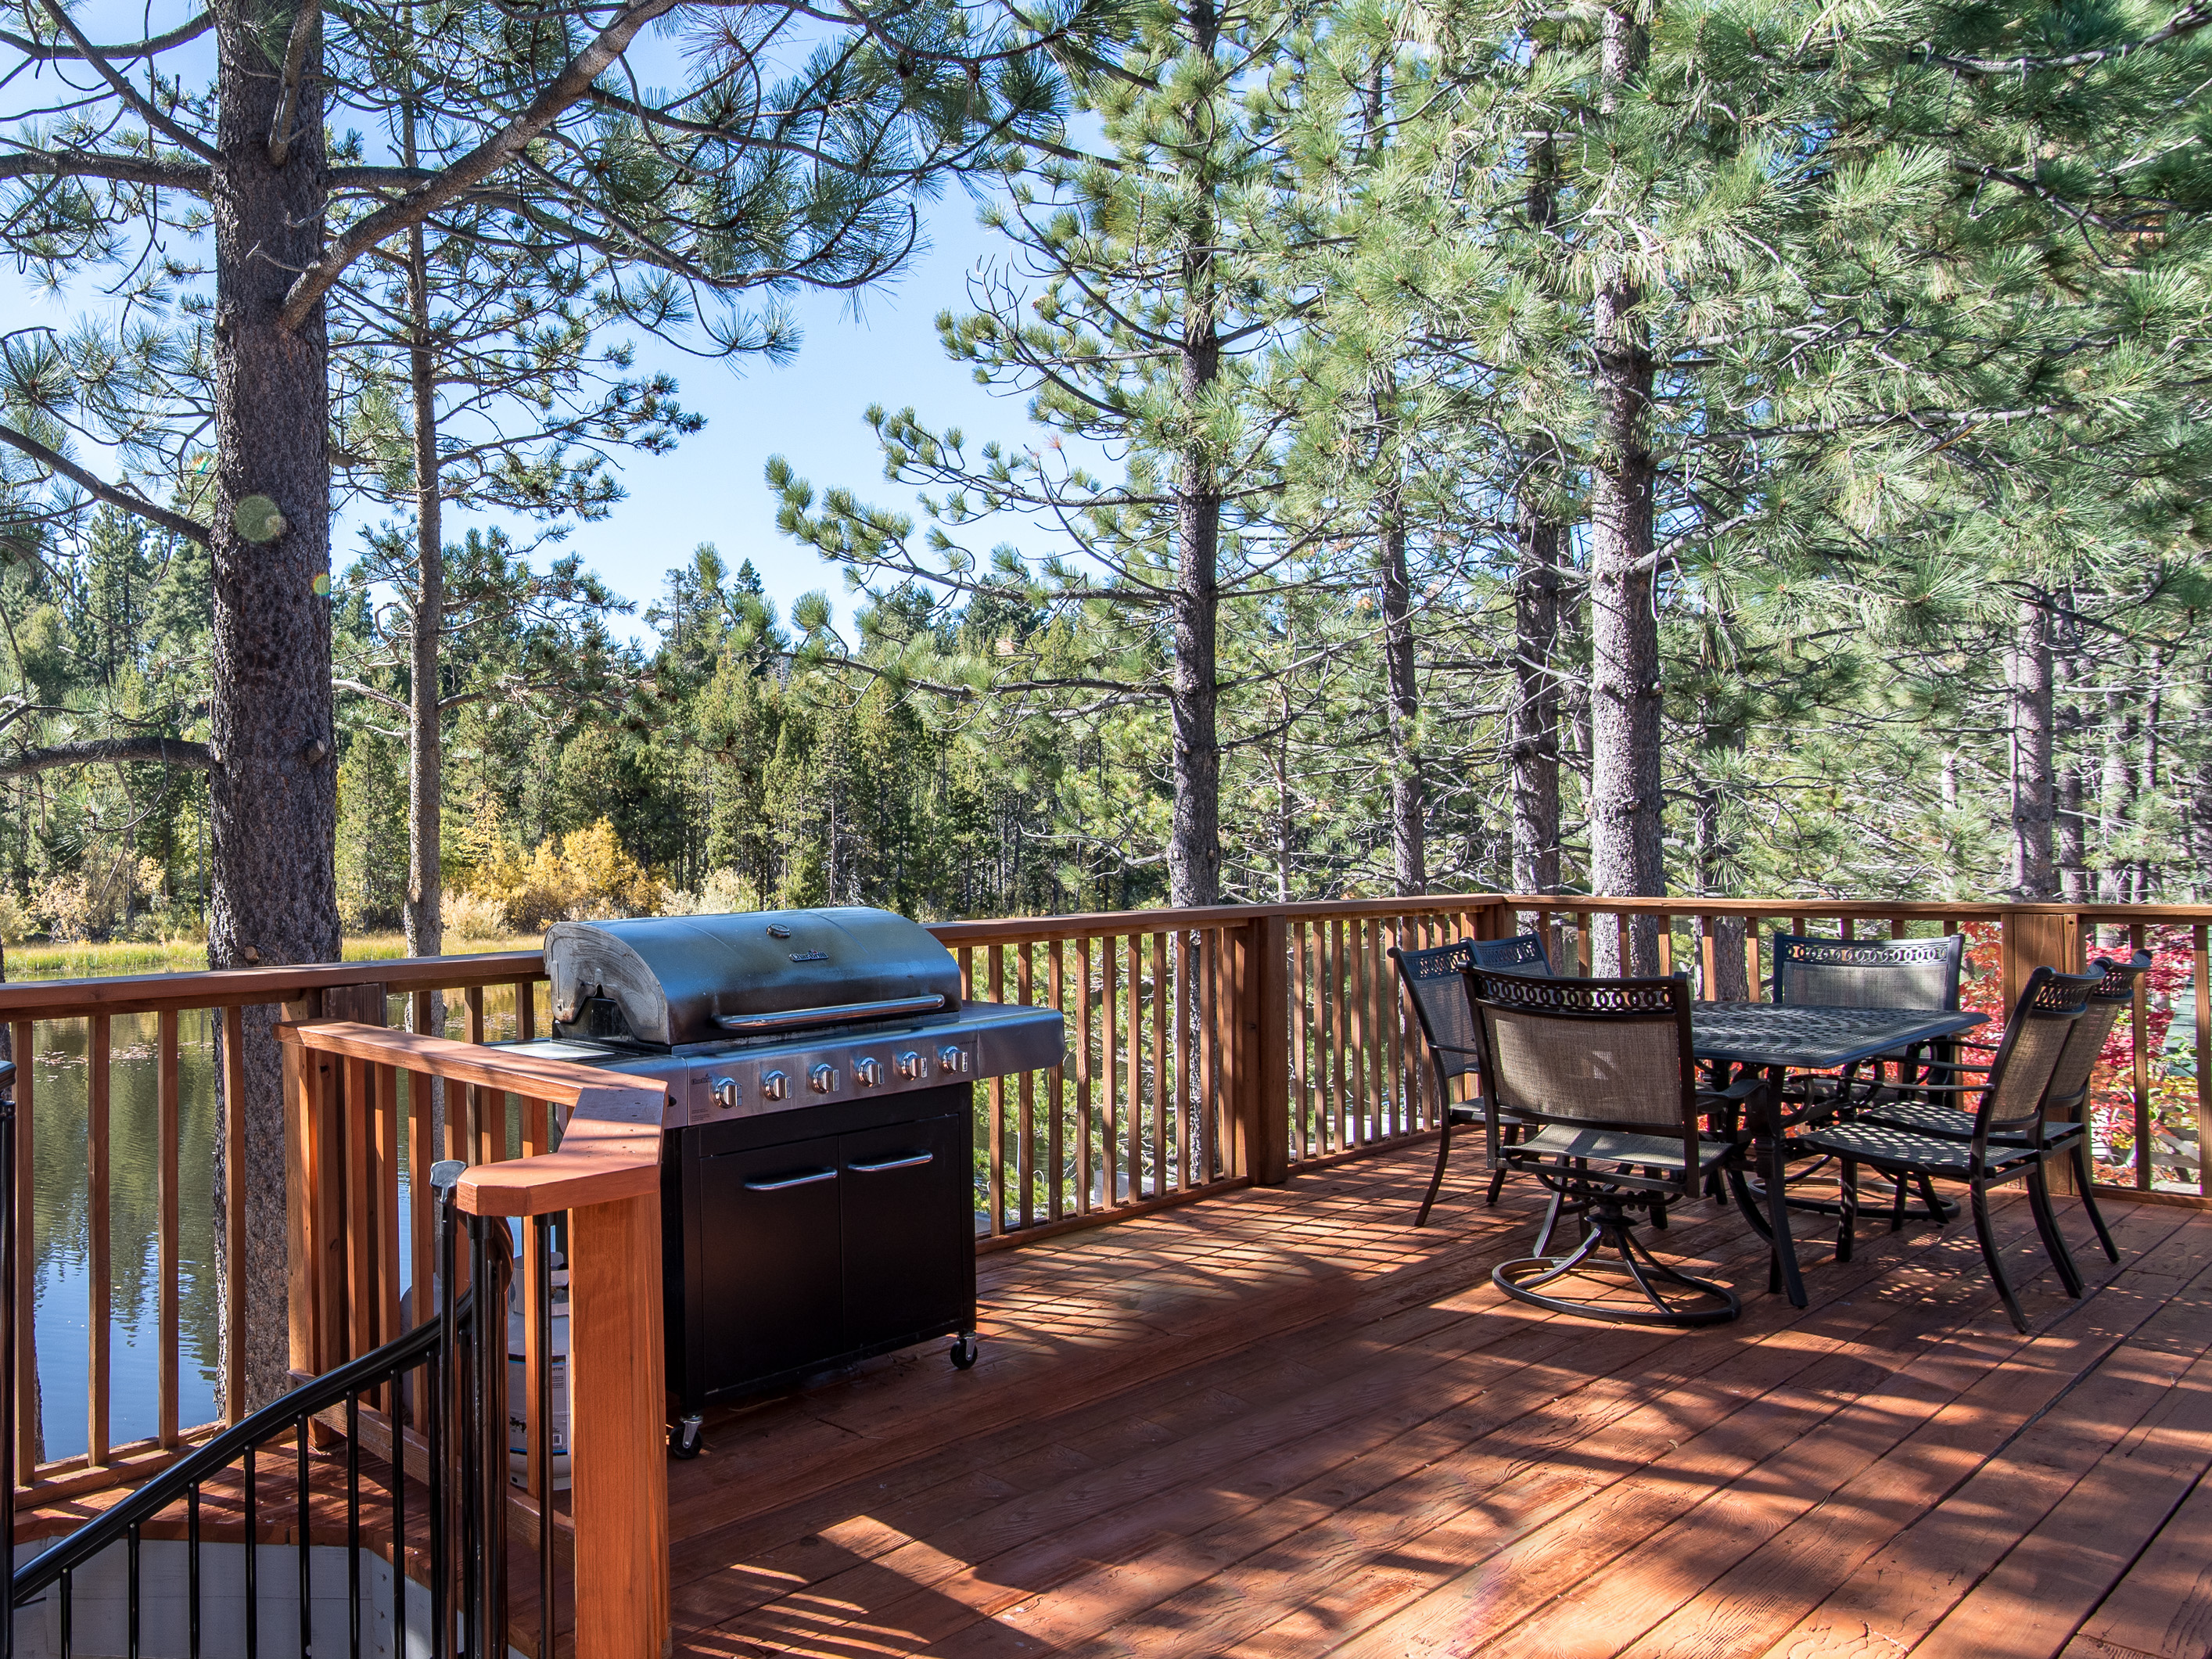 South Lake Tahoe CA Vacation Rental Amazing view while